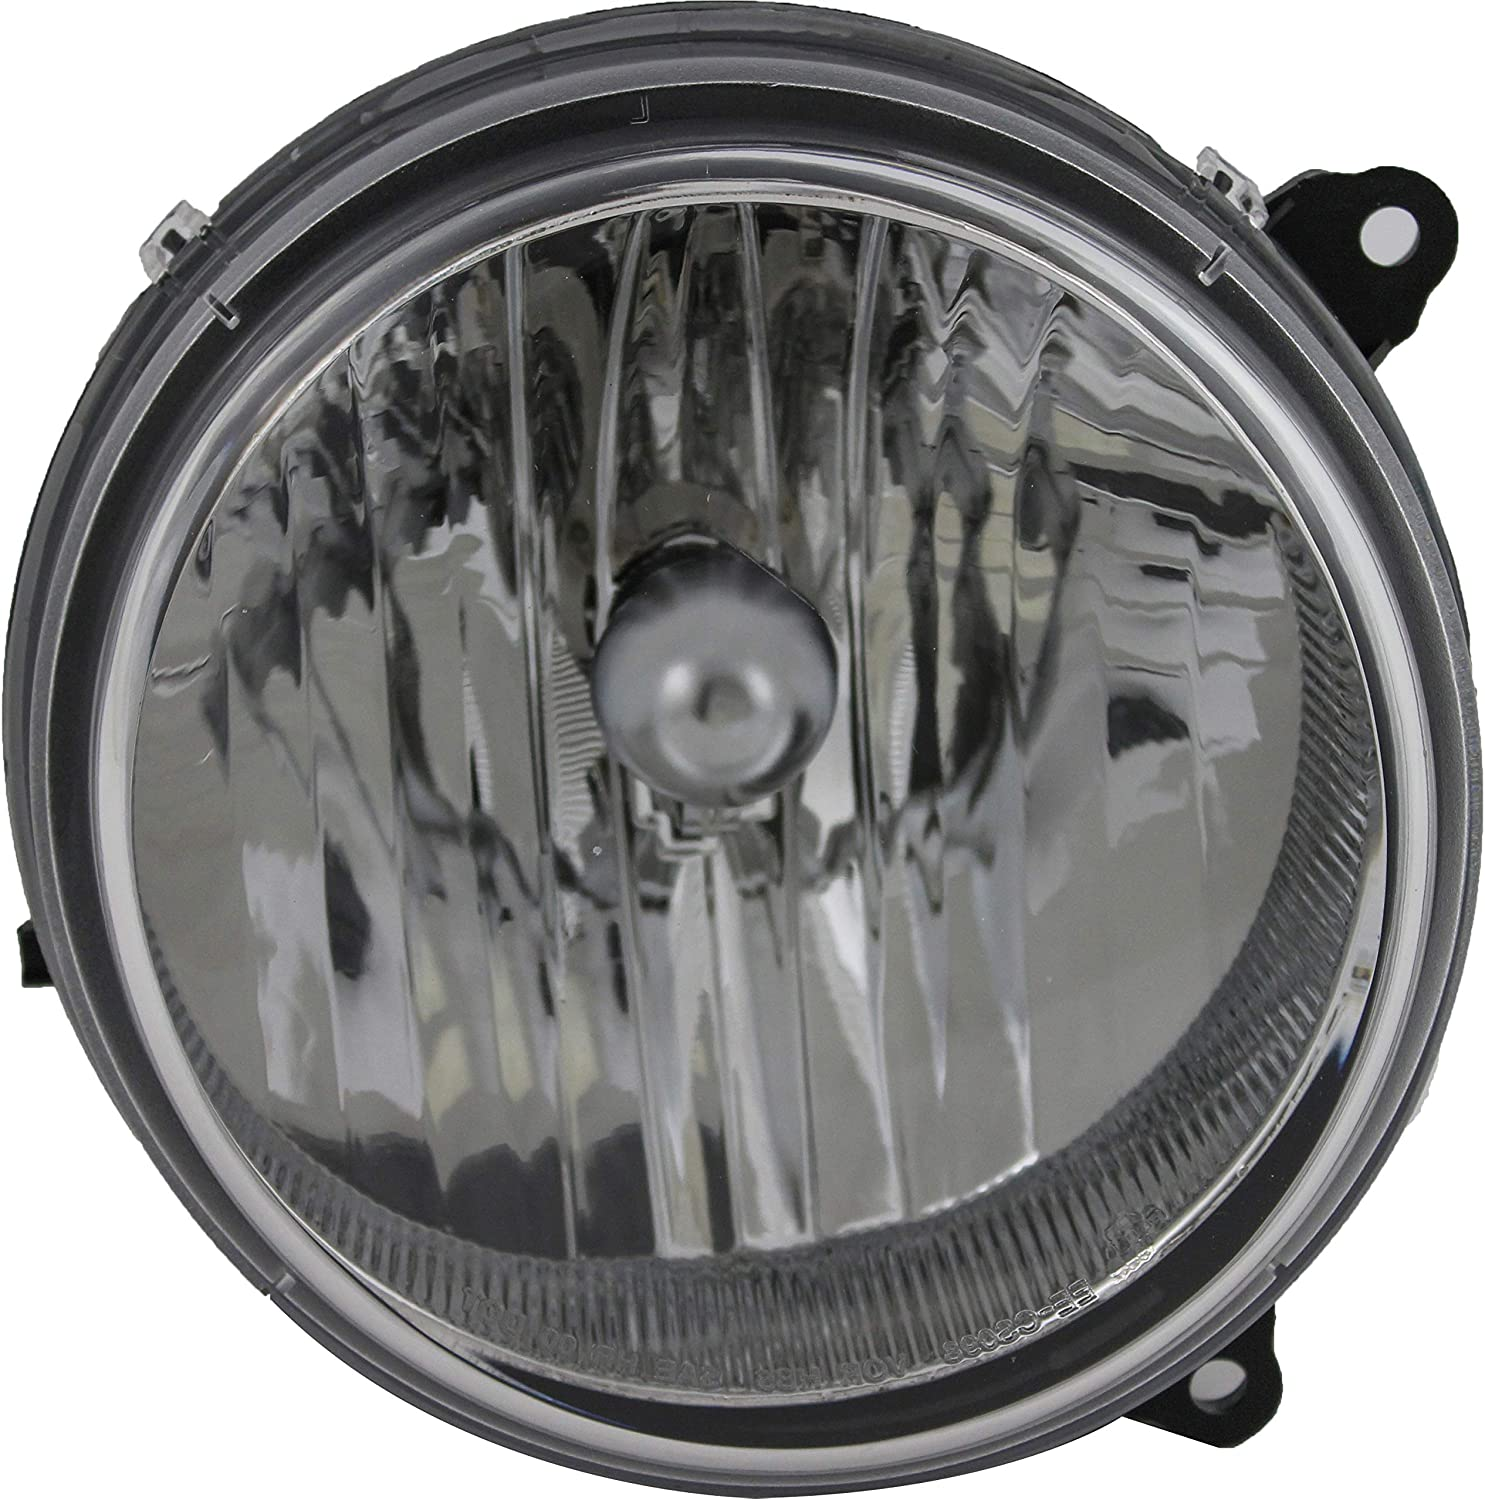 For Jeep Liberty Headlight 2005 2006 2007 Passenger OFFicial H It is very popular Right Side